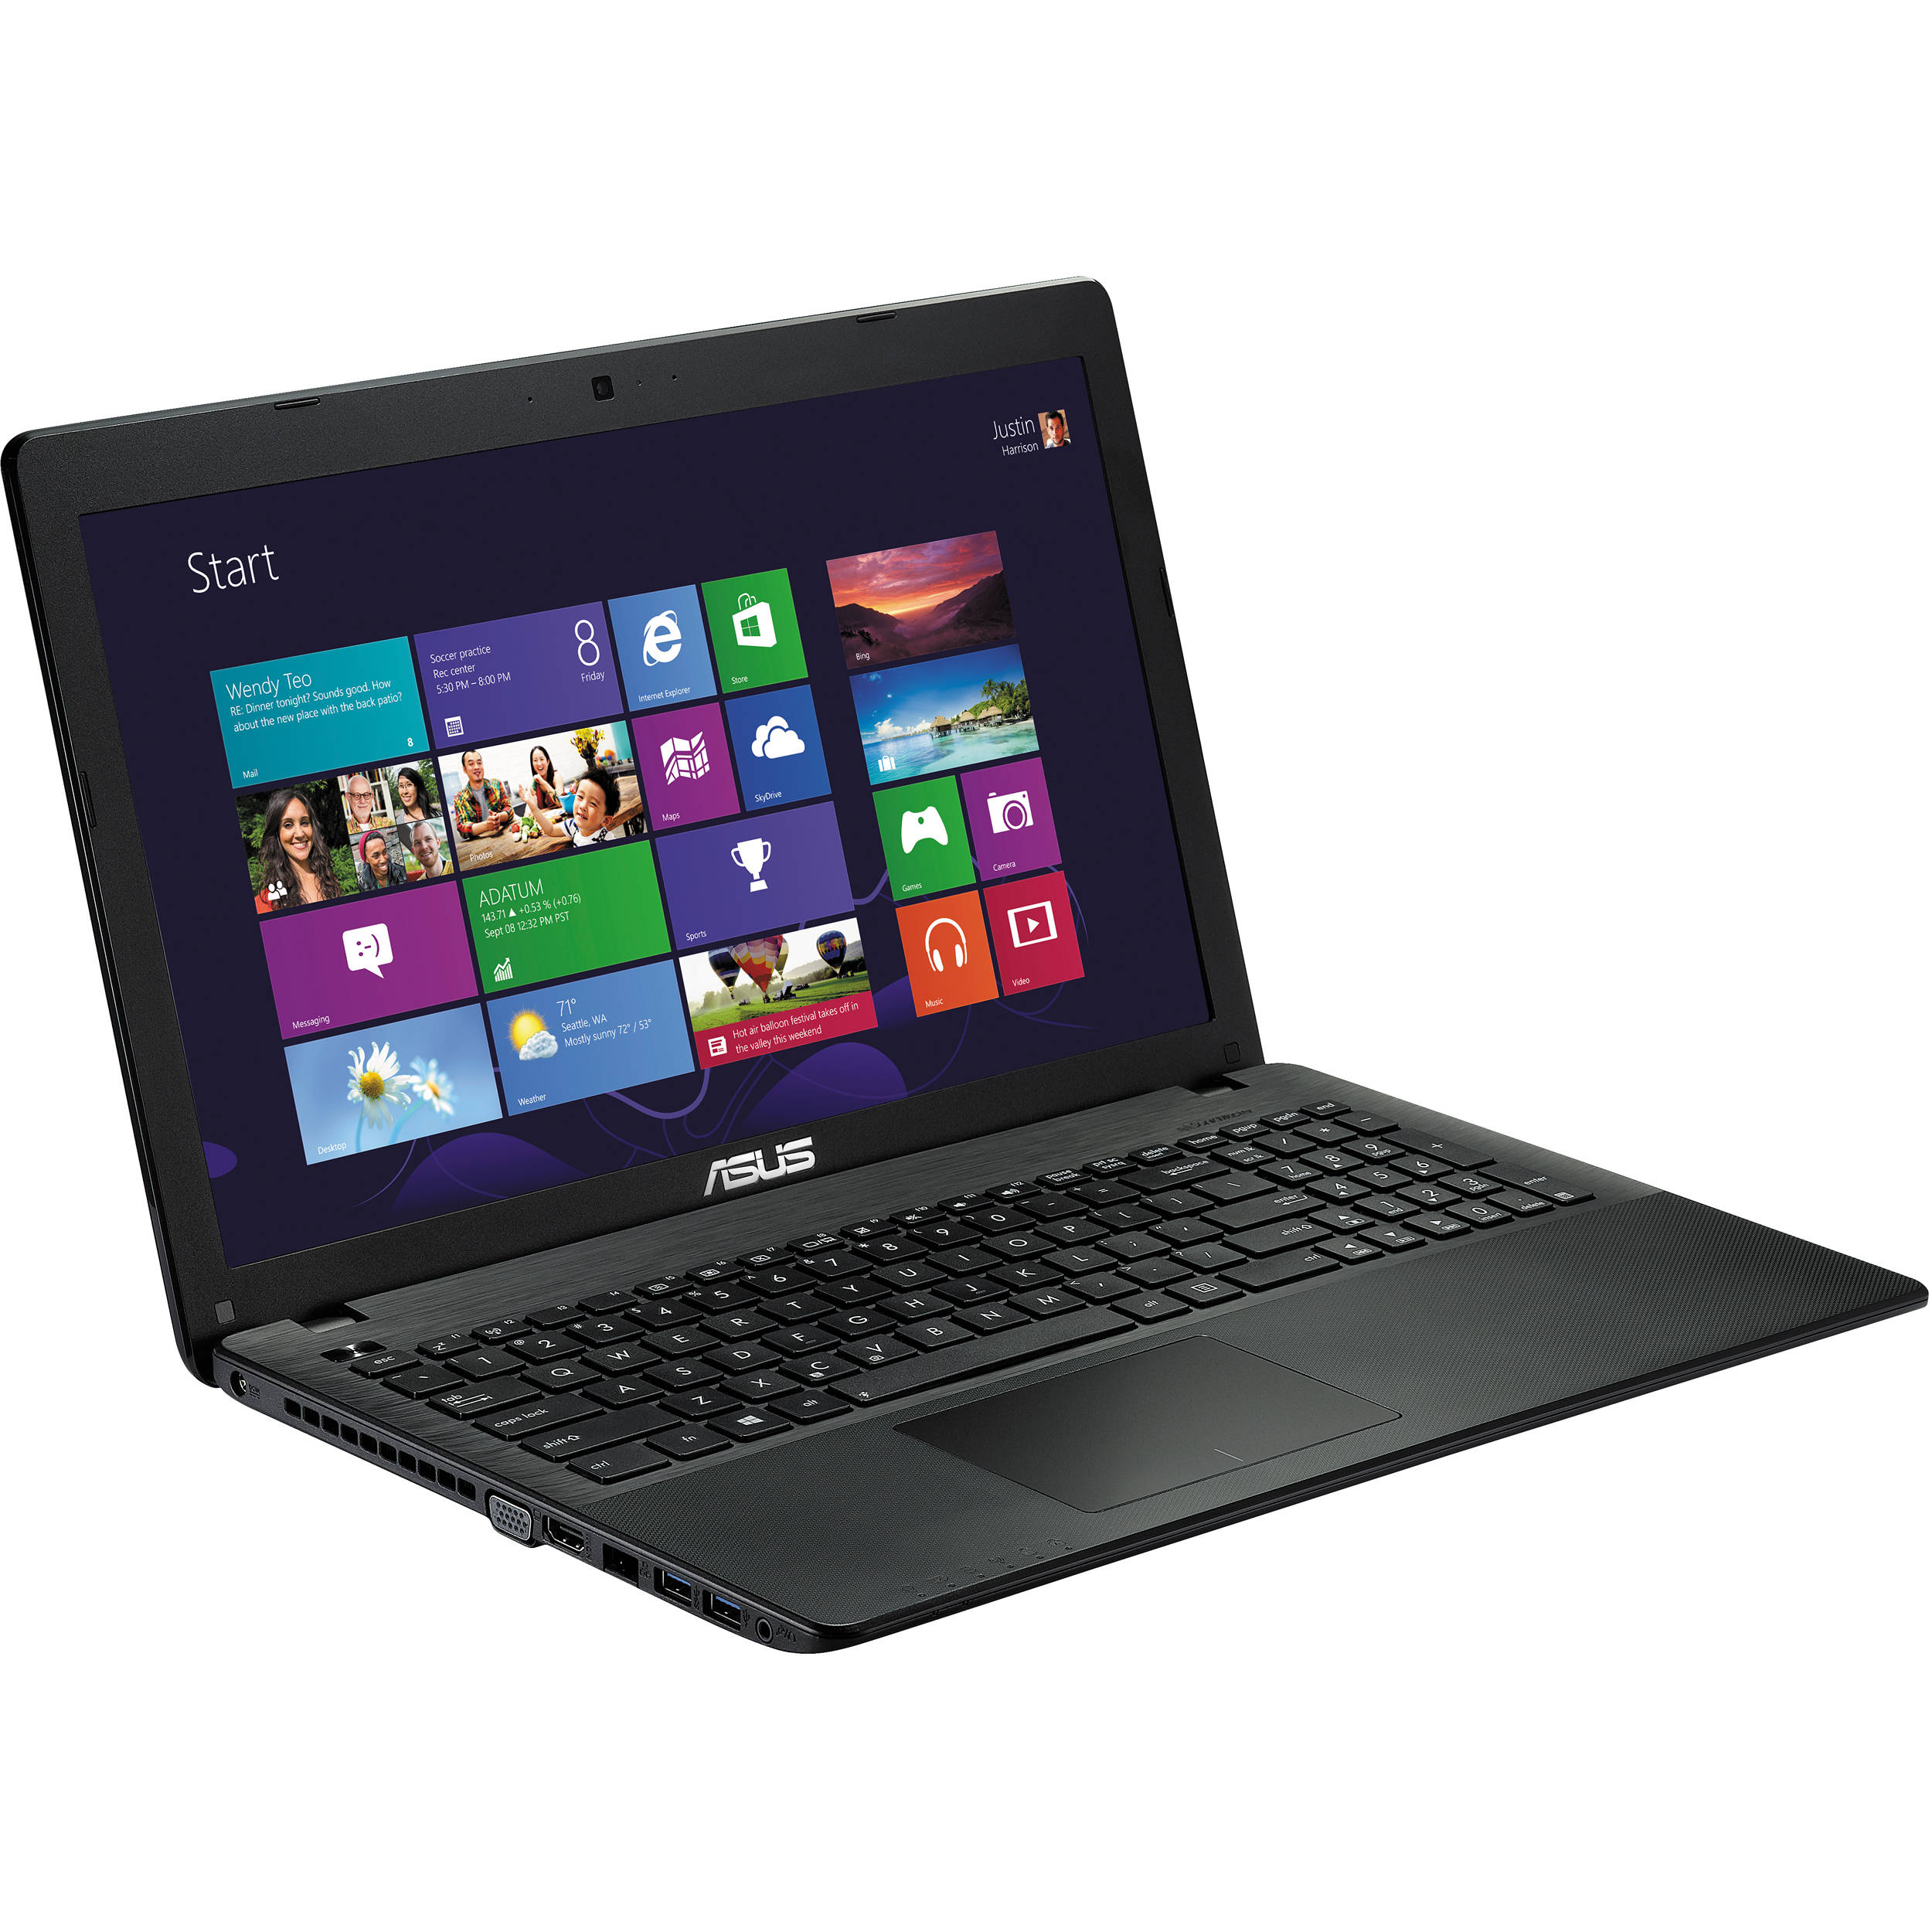 ASUS X552E DRIVERS DOWNLOAD